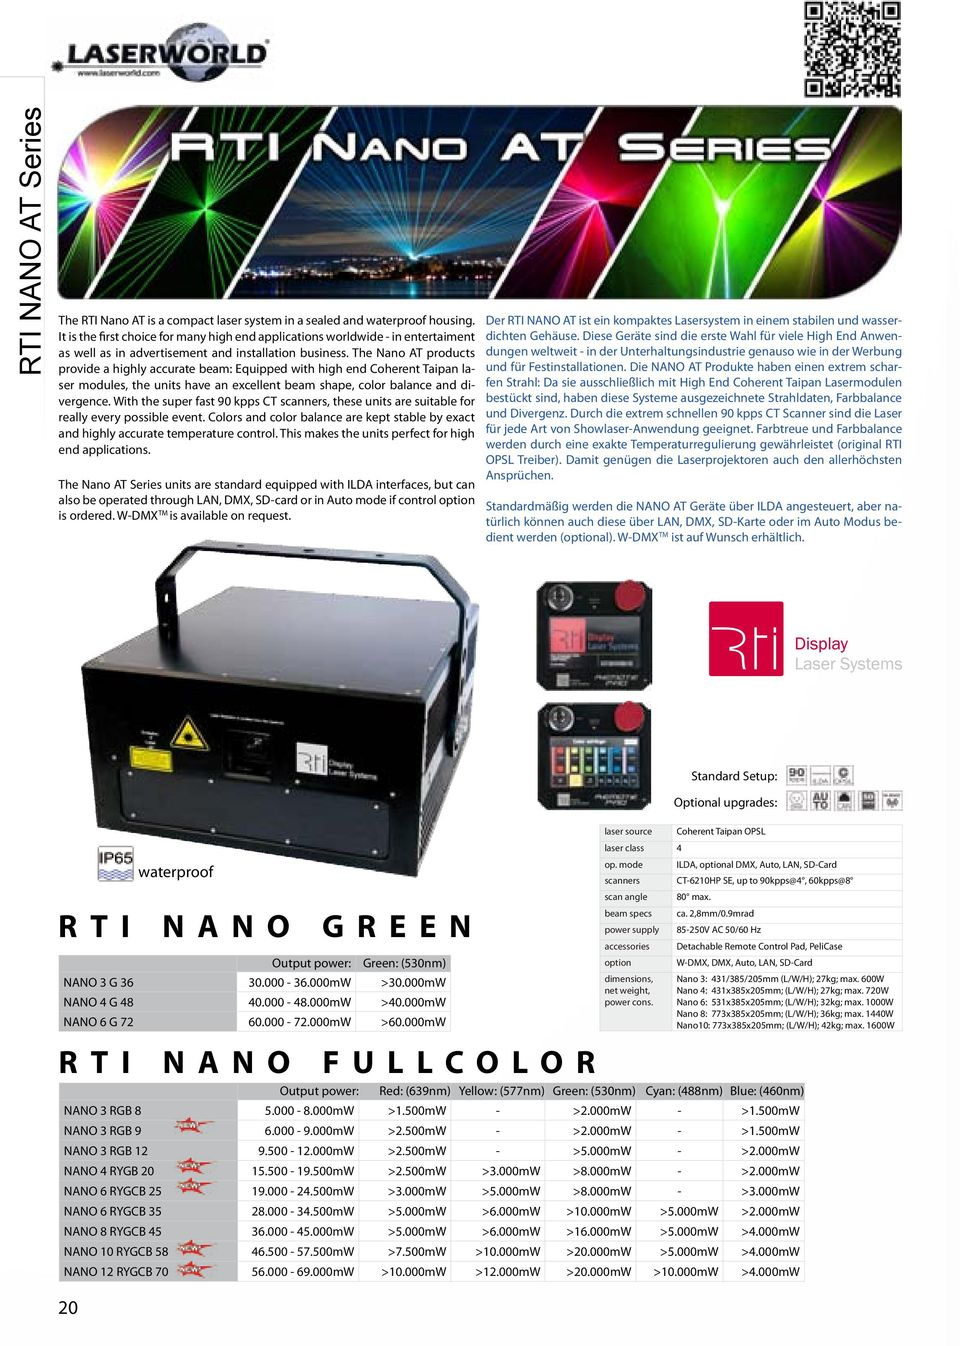 The Nano AT products provide a highly accurate beam: Equipped with high end Coherent Taipan laser modules, the units have an excellent beam shape, color balance and divergence.